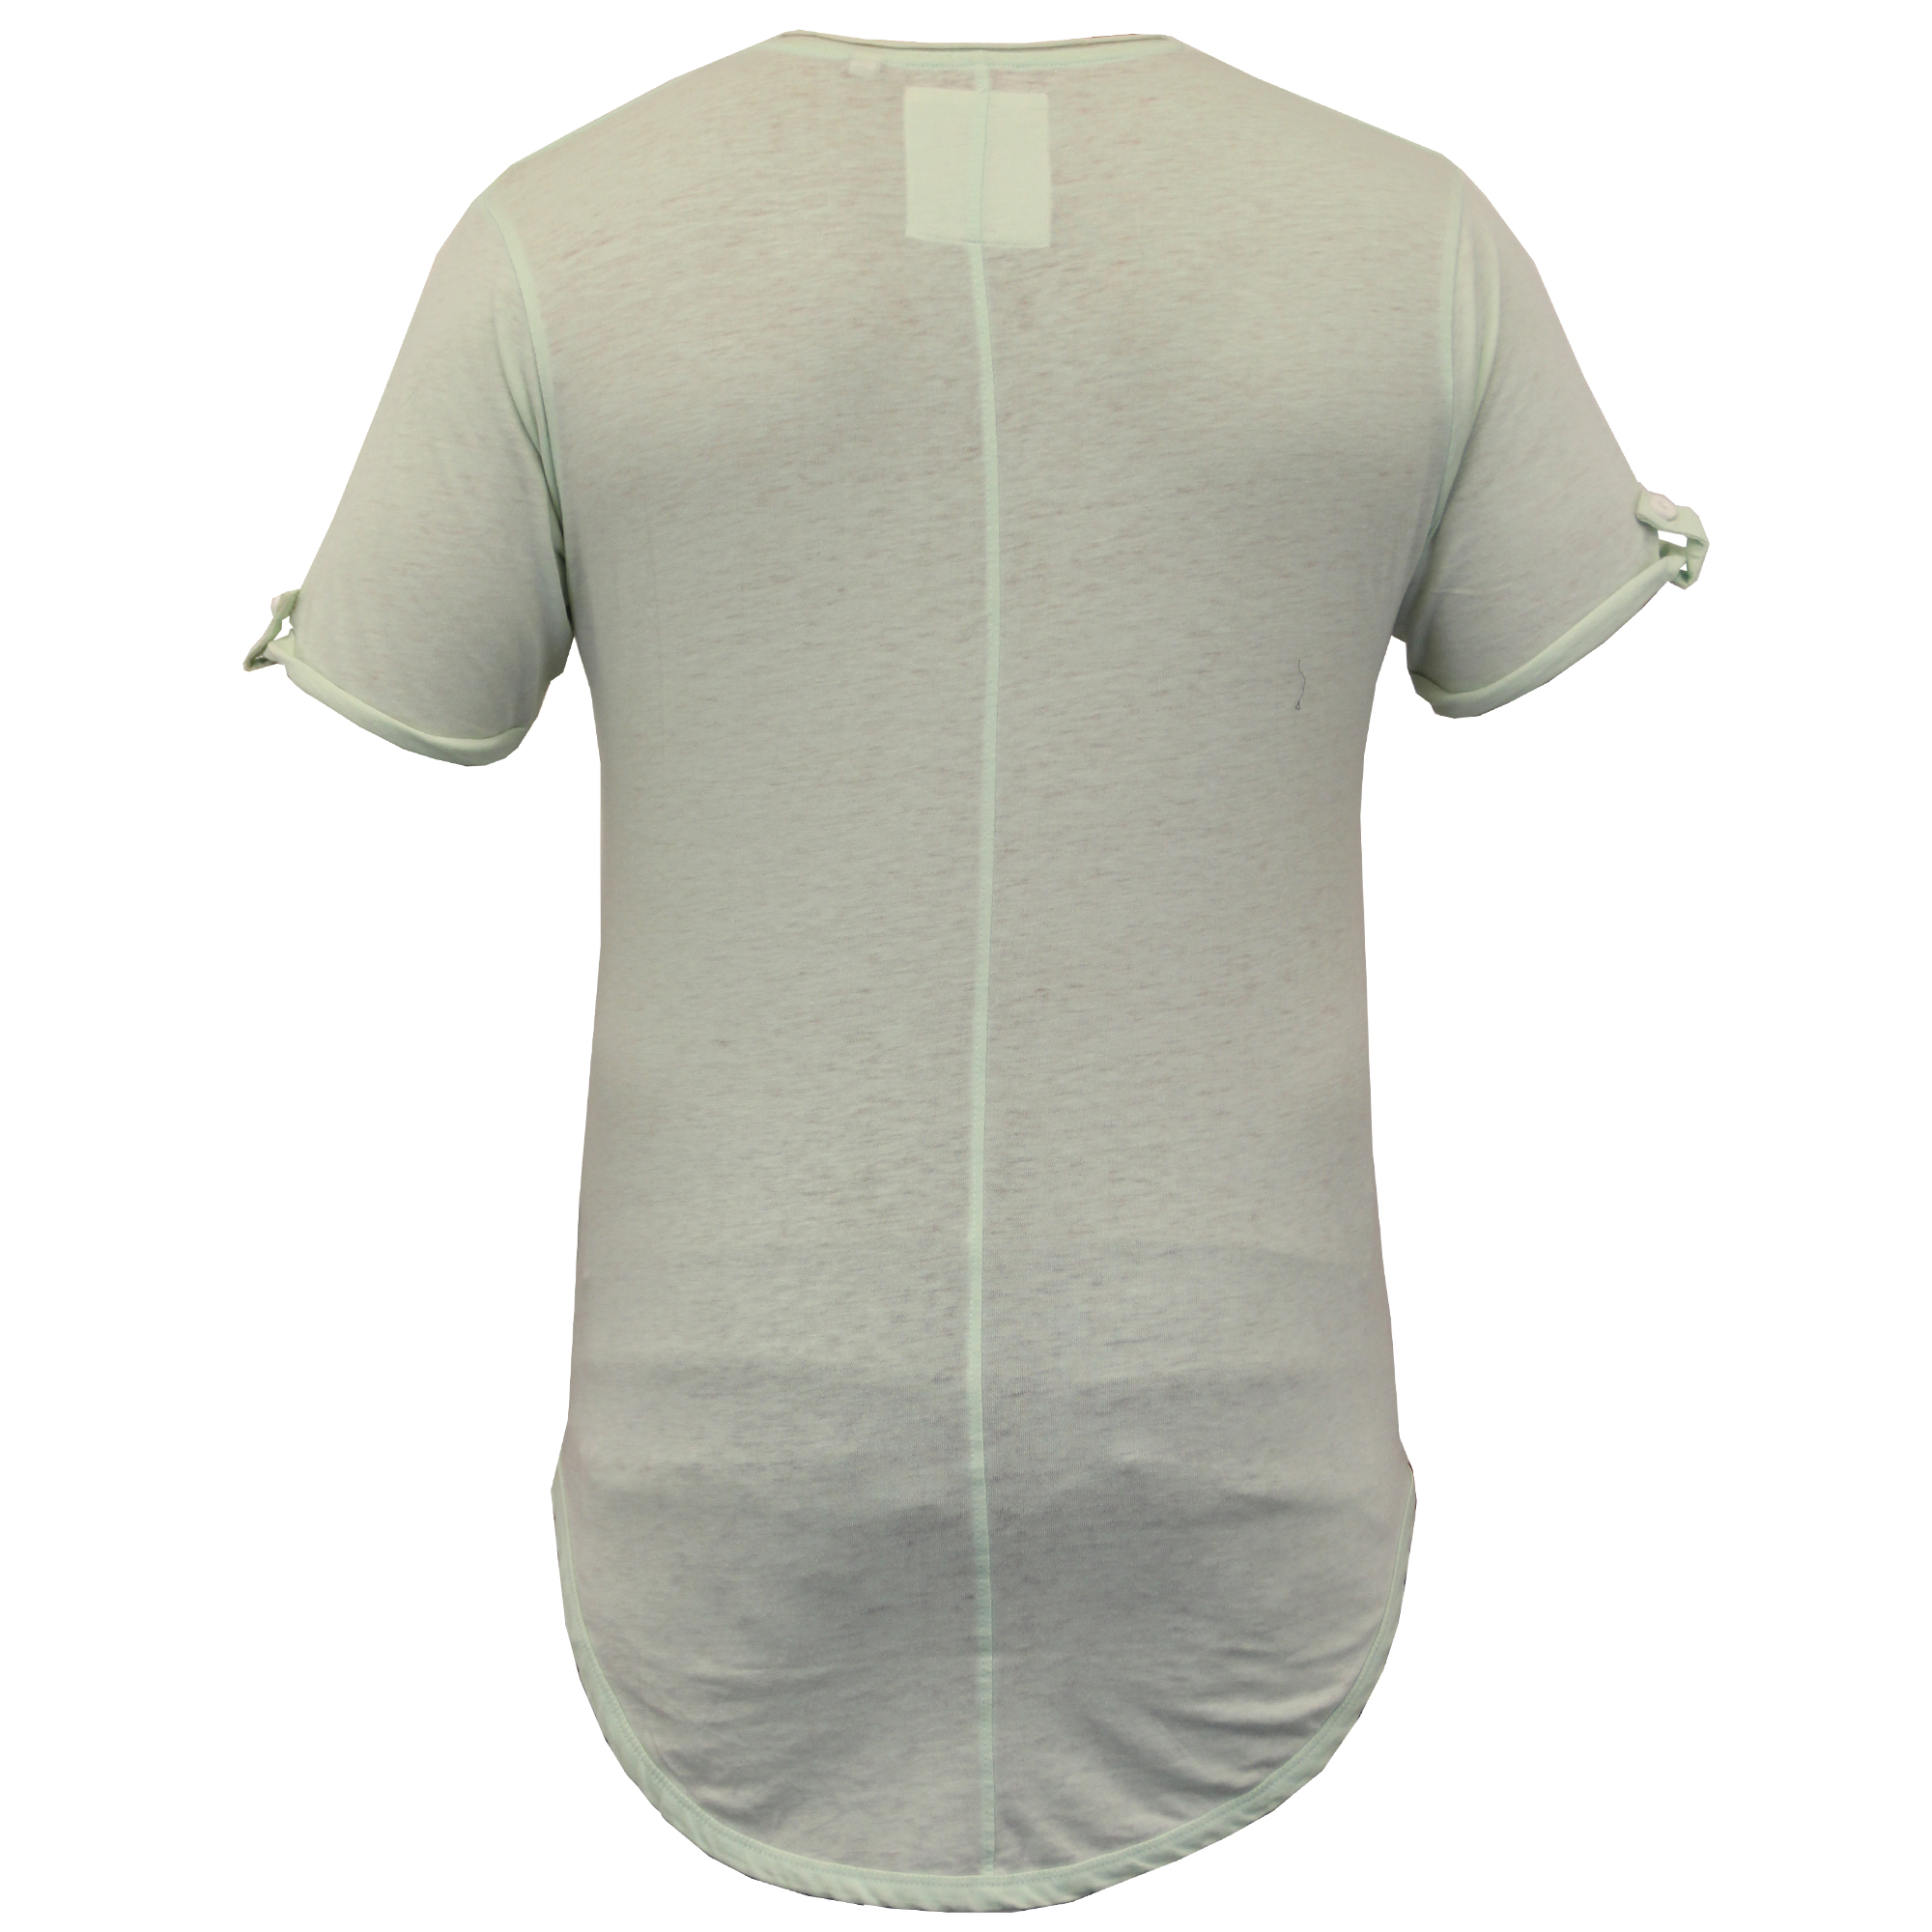 mens long line short sleeved t shirts by soul star ebay ForLong Line Short Sleeve T Shirt